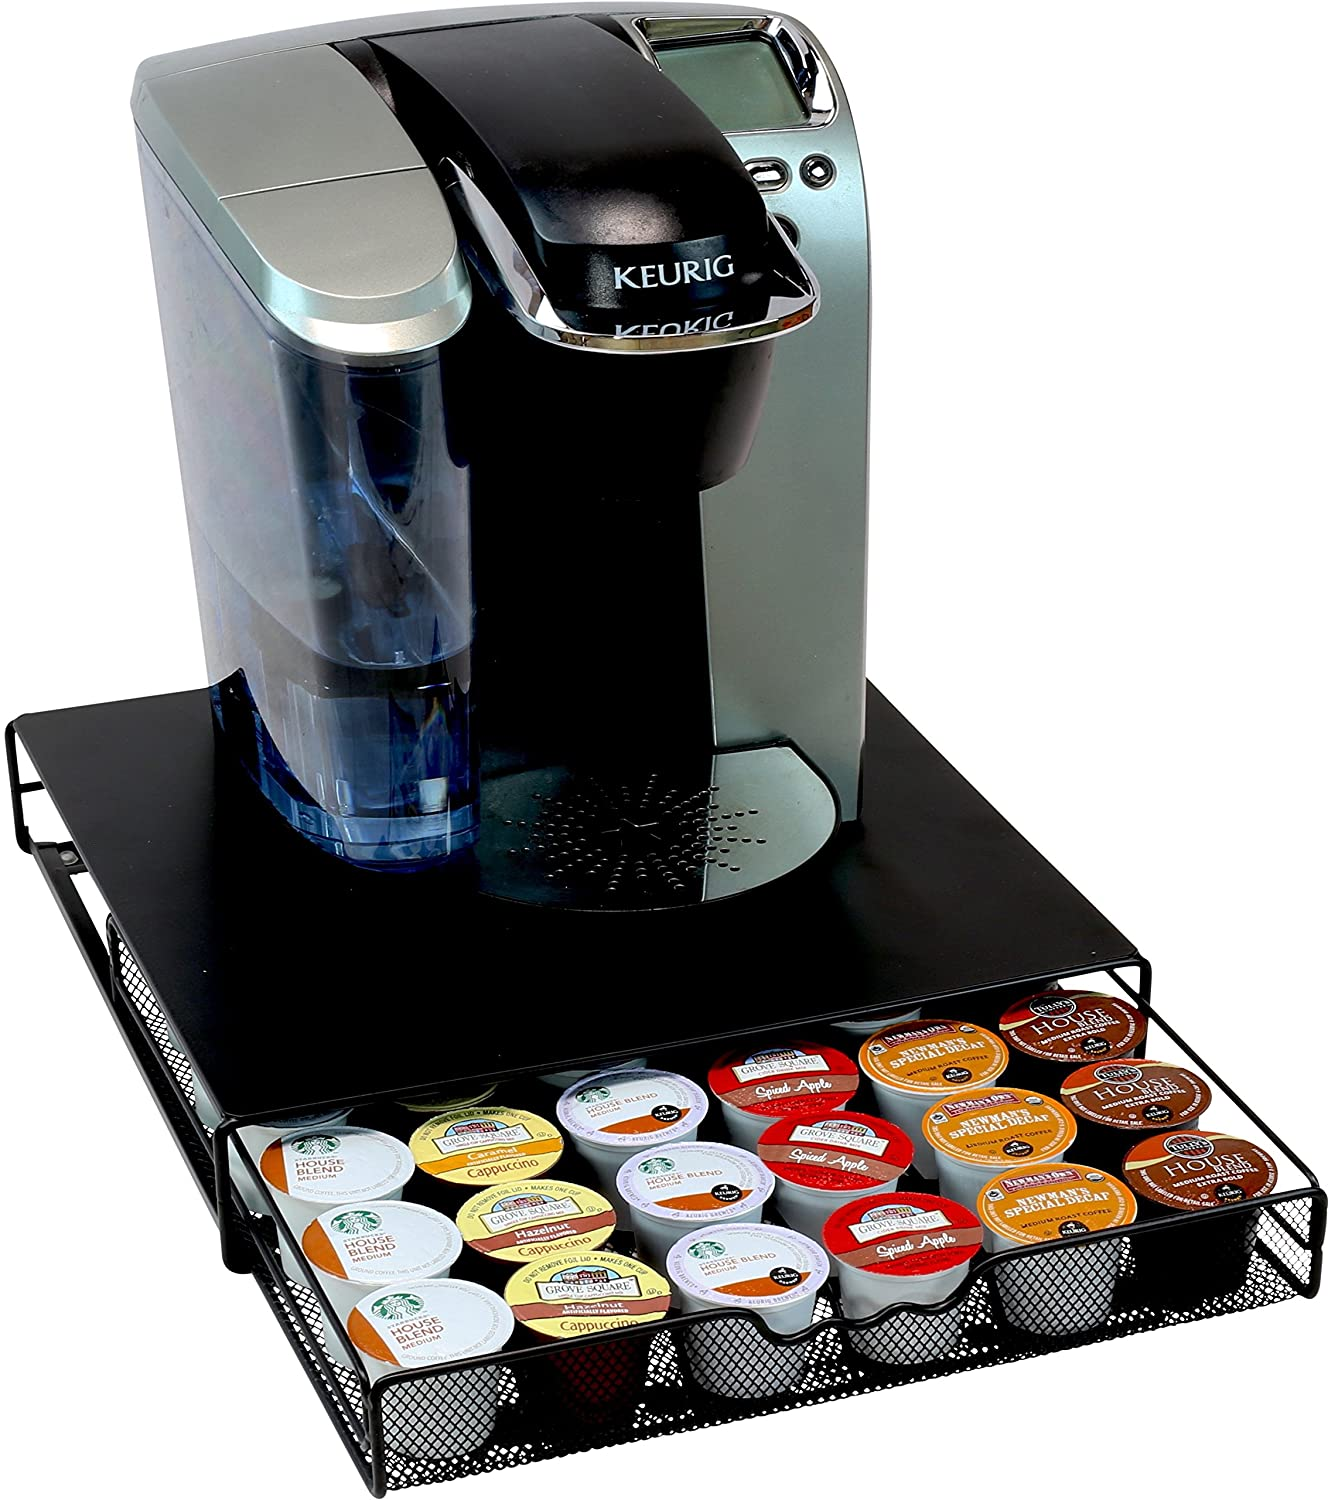 Amazon.com: DecoBros K-cup Storage Drawer Holder for Keurig K-cup ...